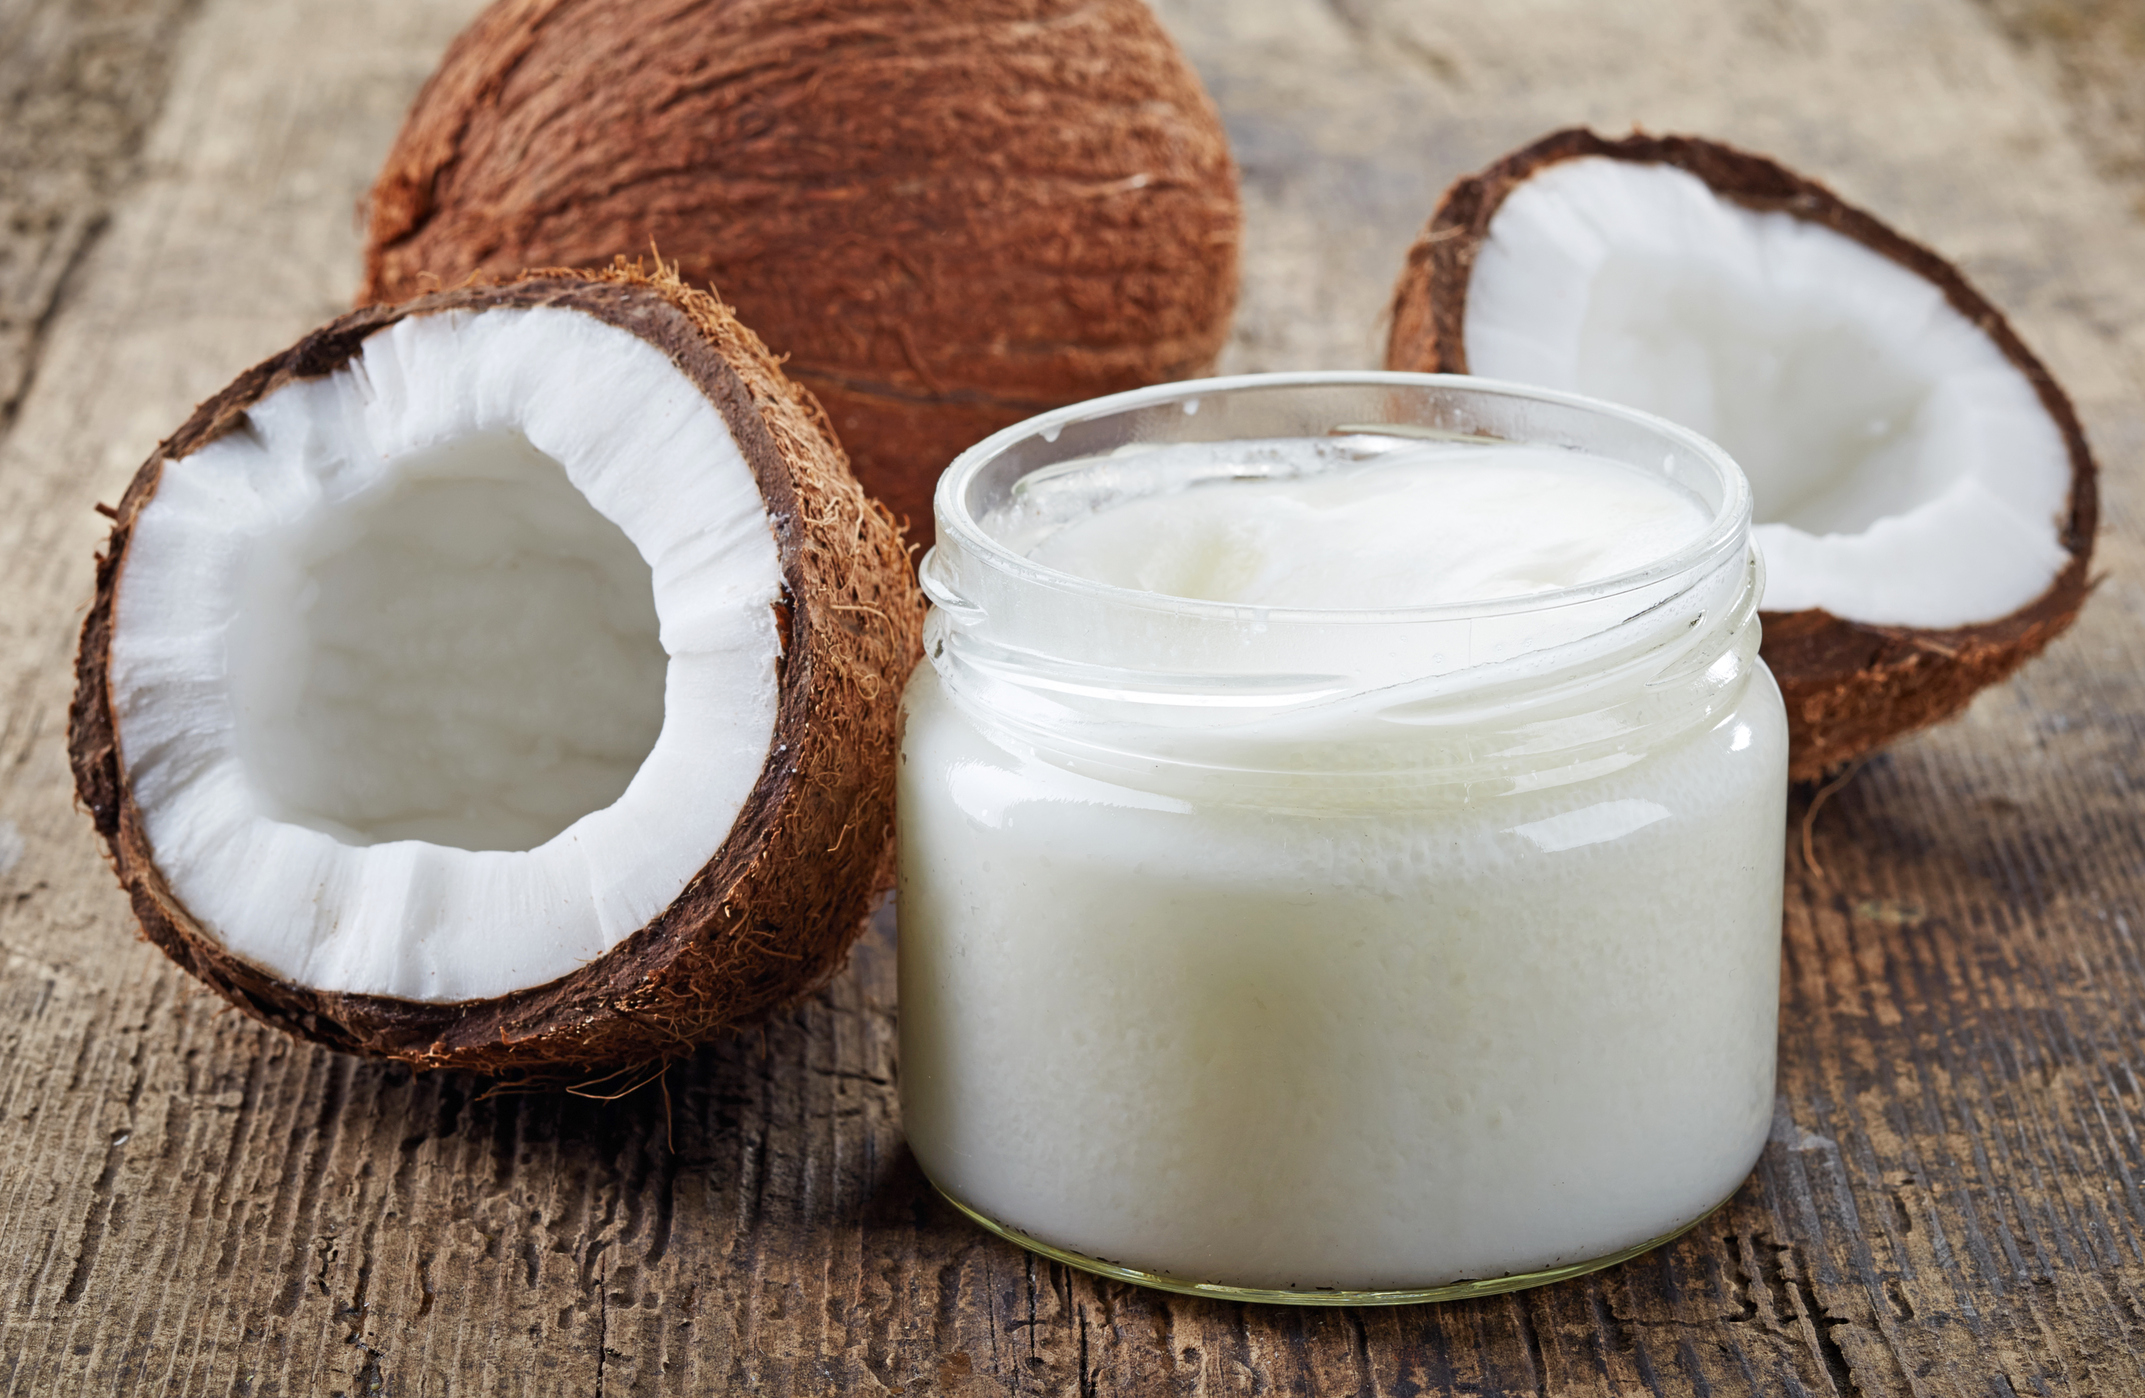 Fresh coconuts and a jar of coconut oil on a wooden table